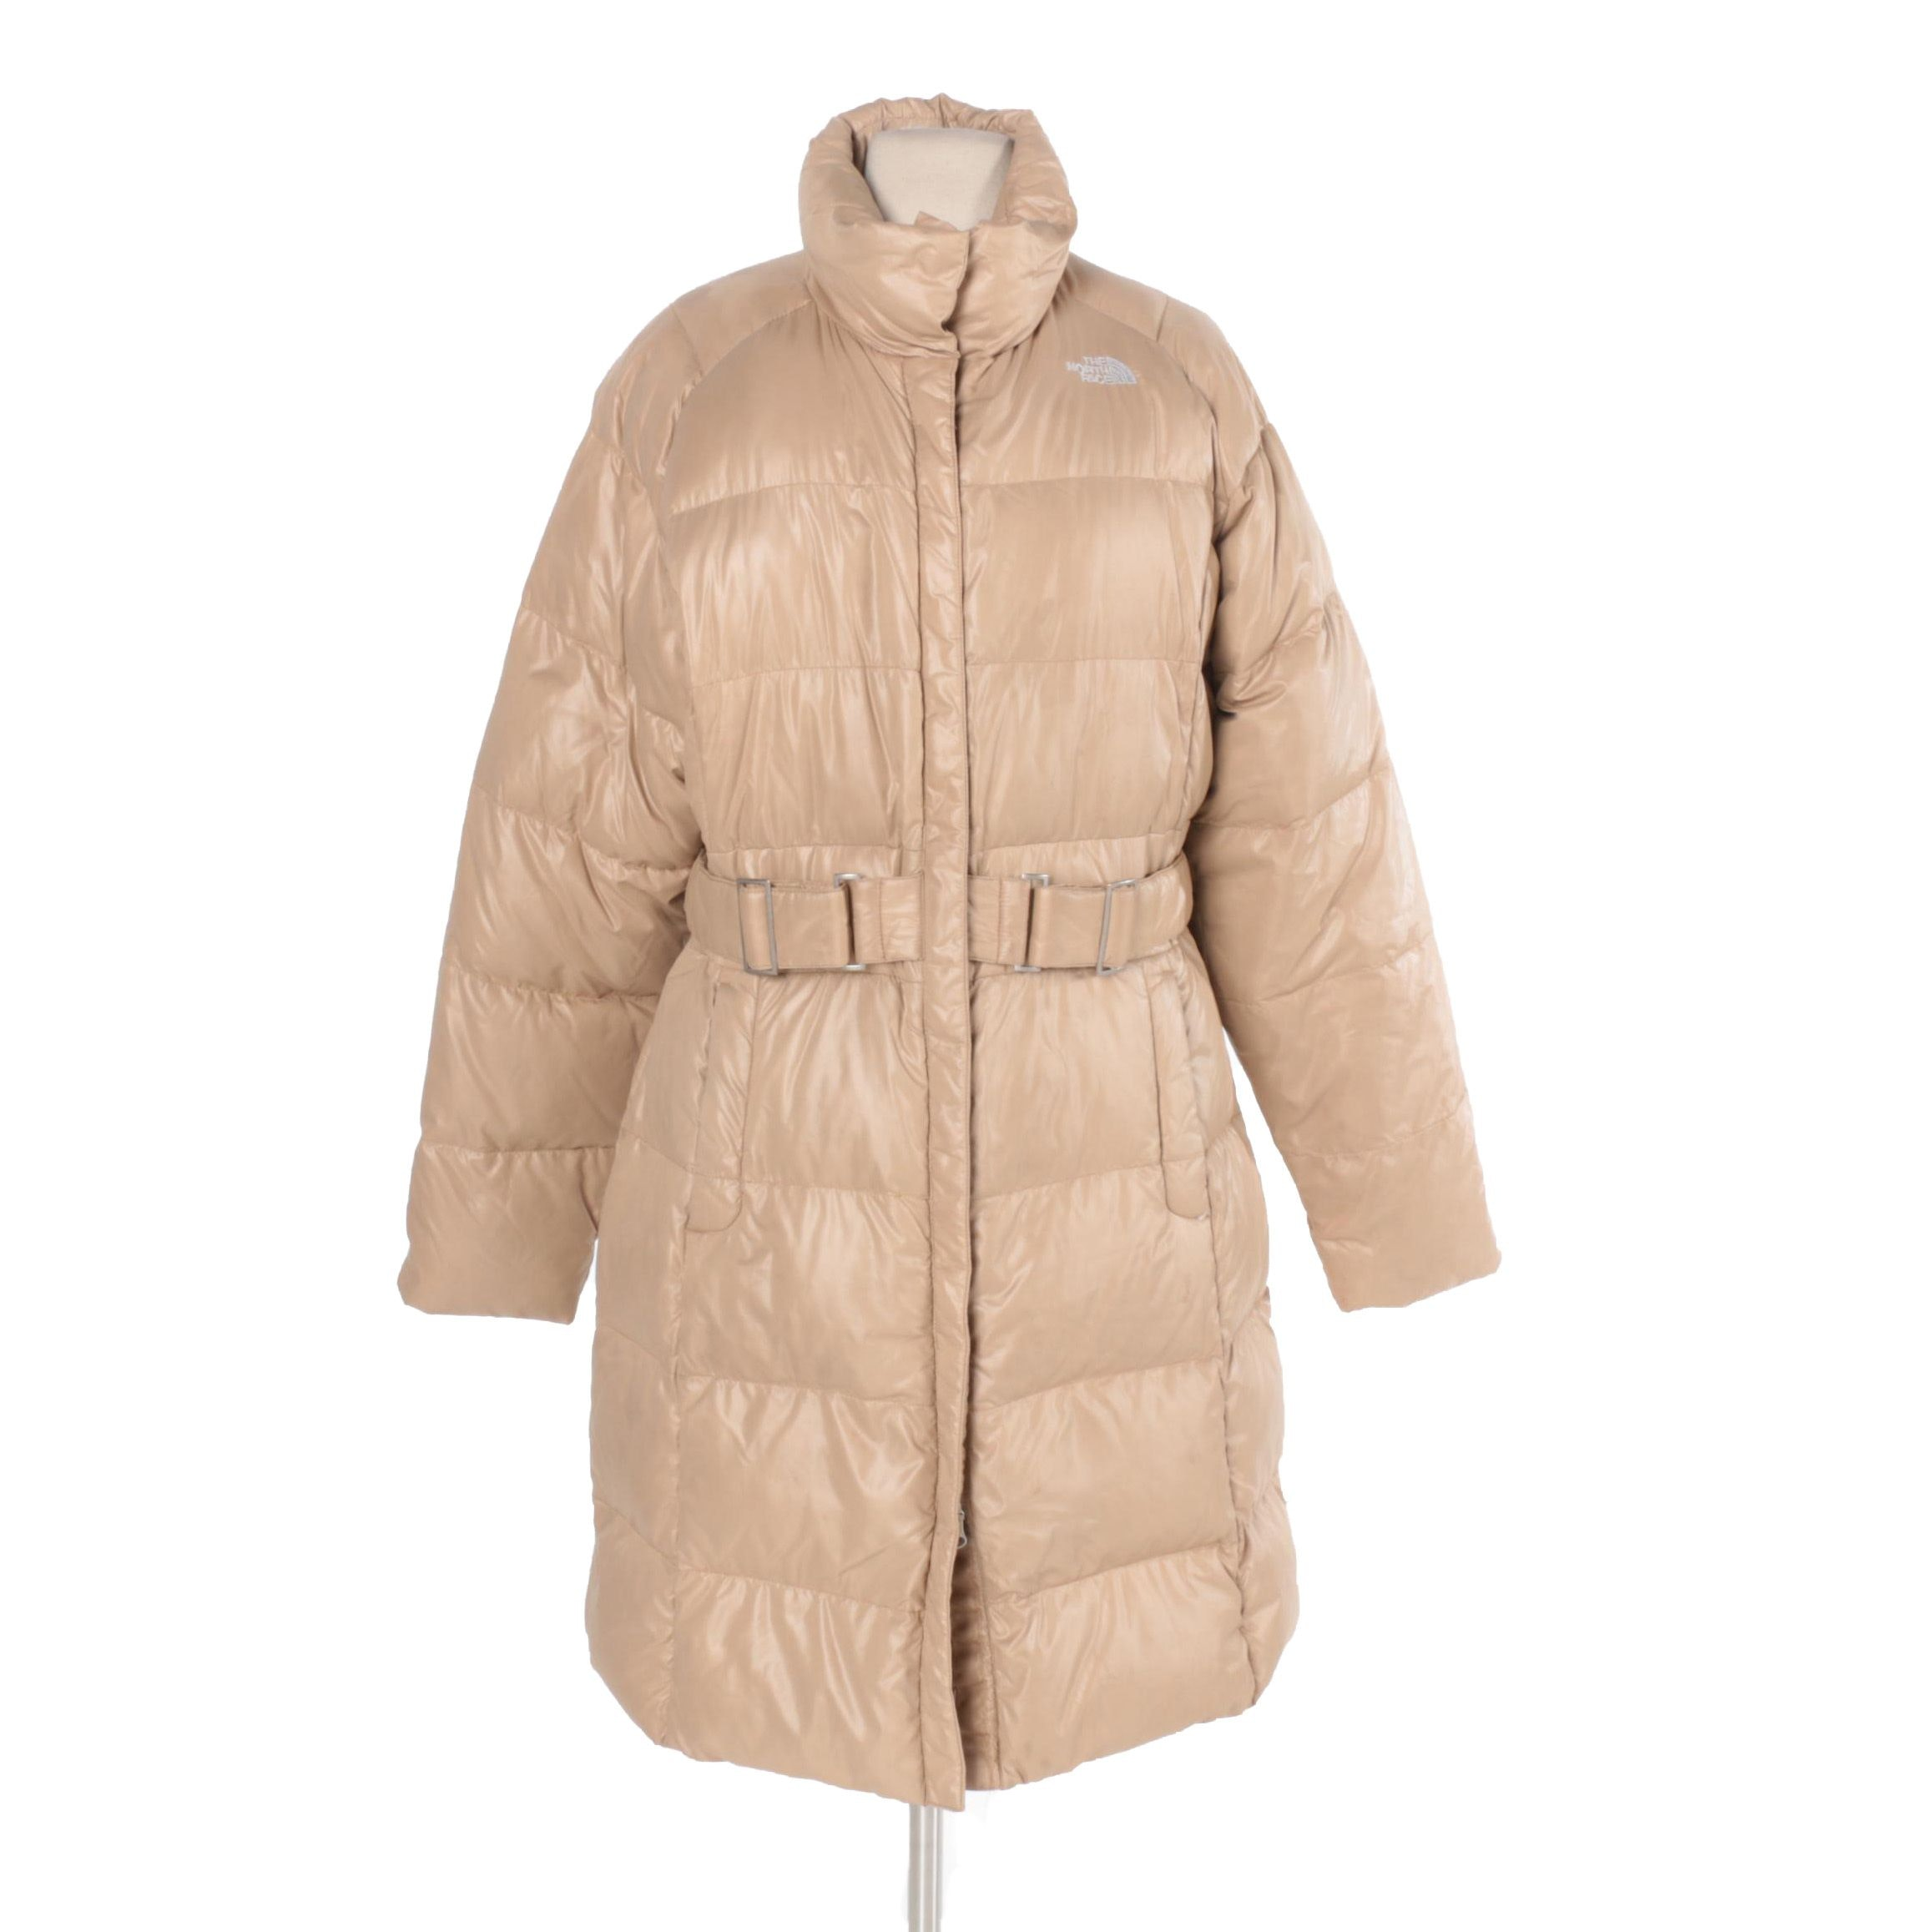 Women's The North Face Tan Puffer Coat